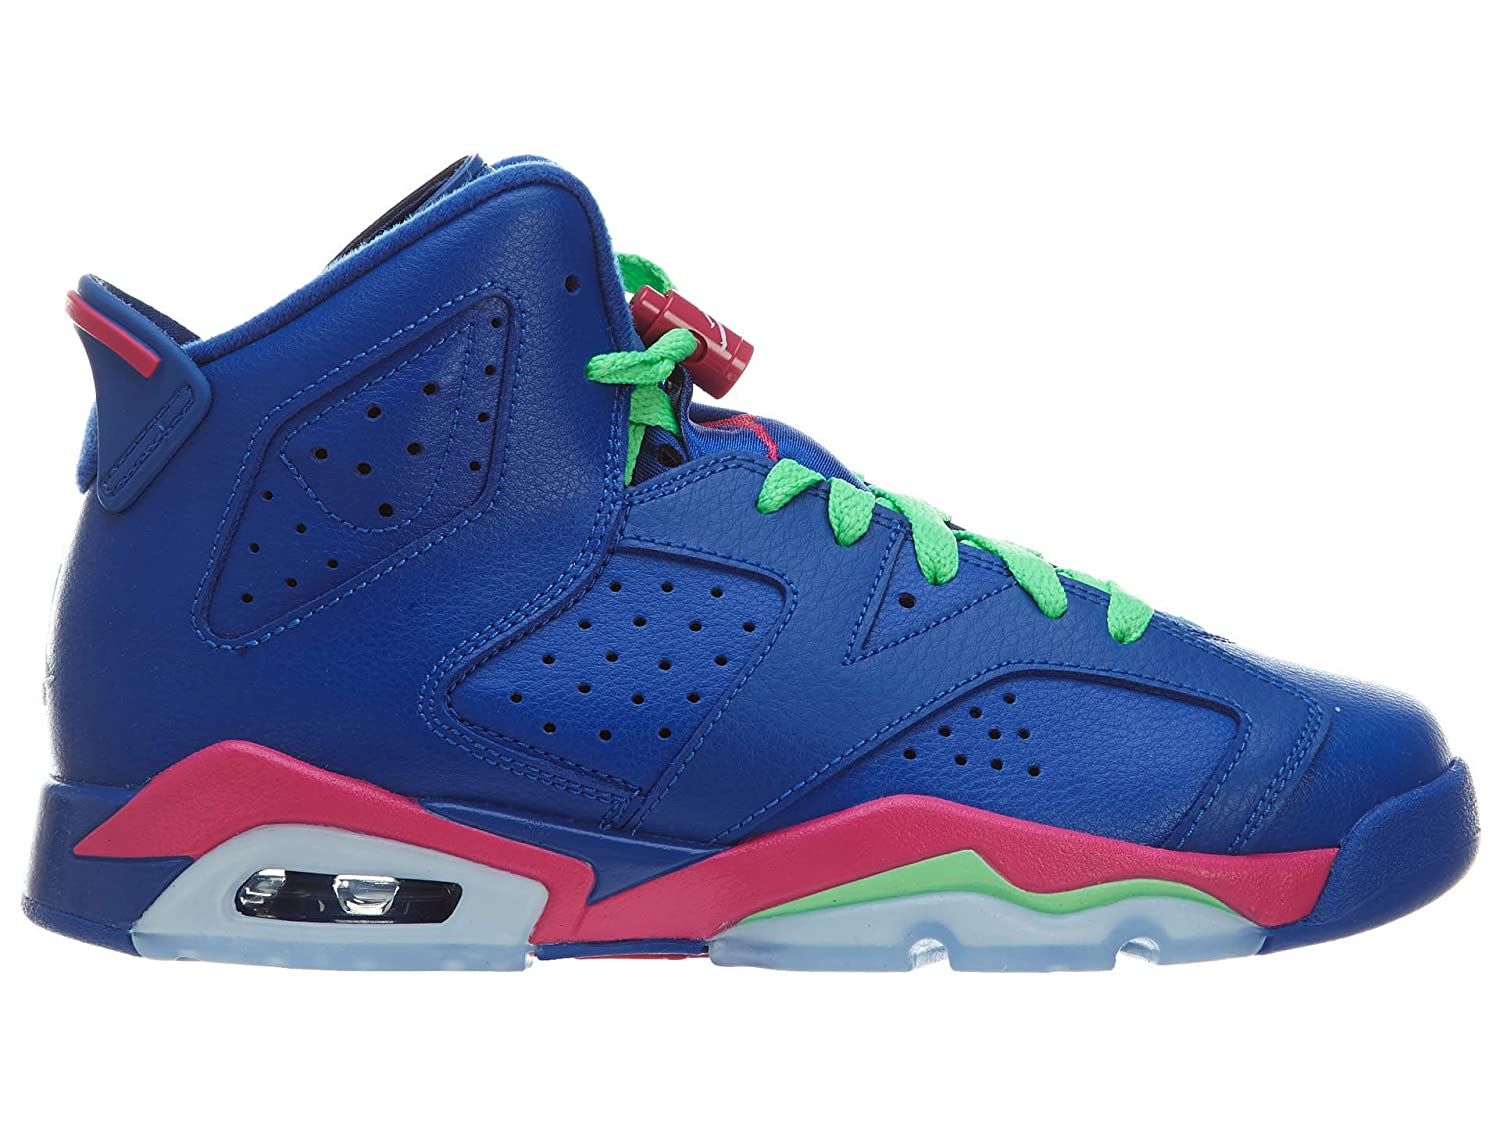 best sneakers 75cf6 e8517 Amazon.com   Nike Air Jordan 6 Retro GG Hi Top Trainers 543390 Sneakers  Shoes   Shoes